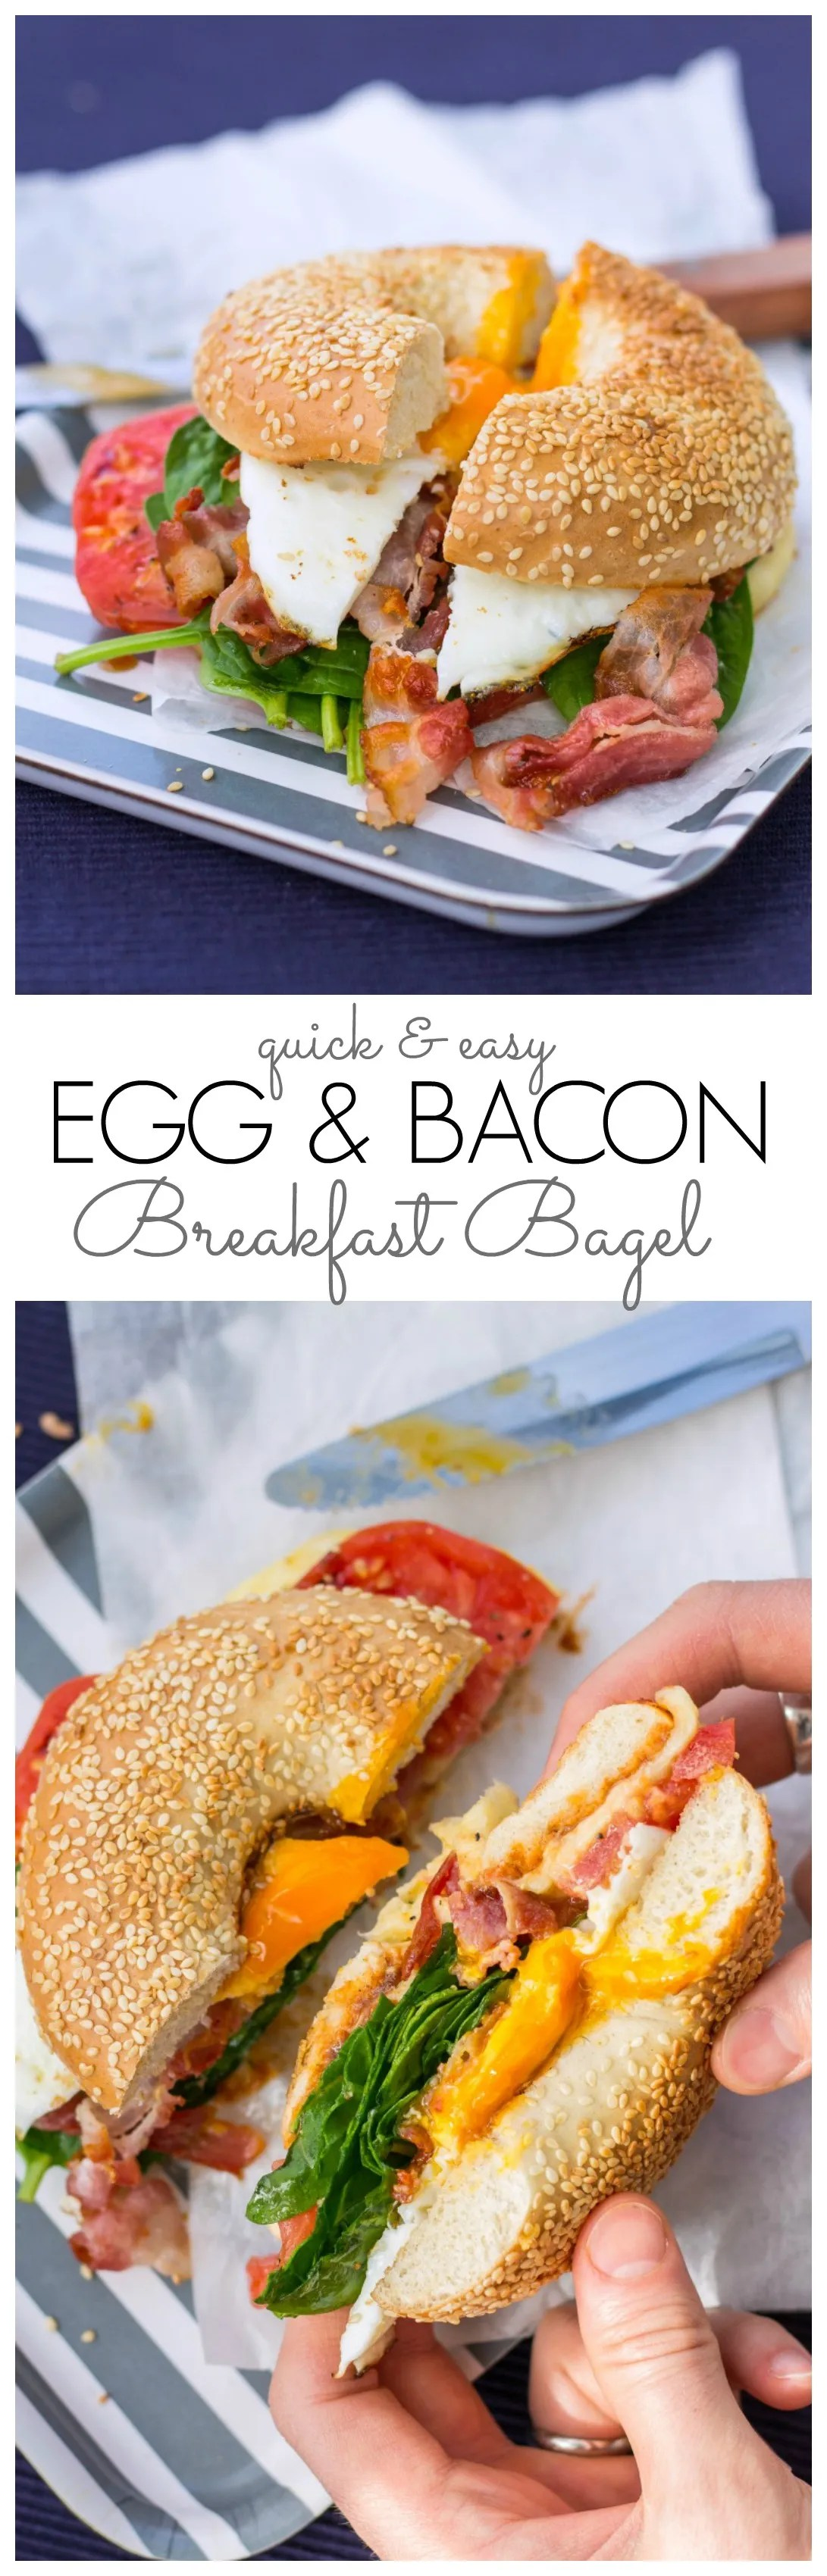 egg & bacon breakfast bagel